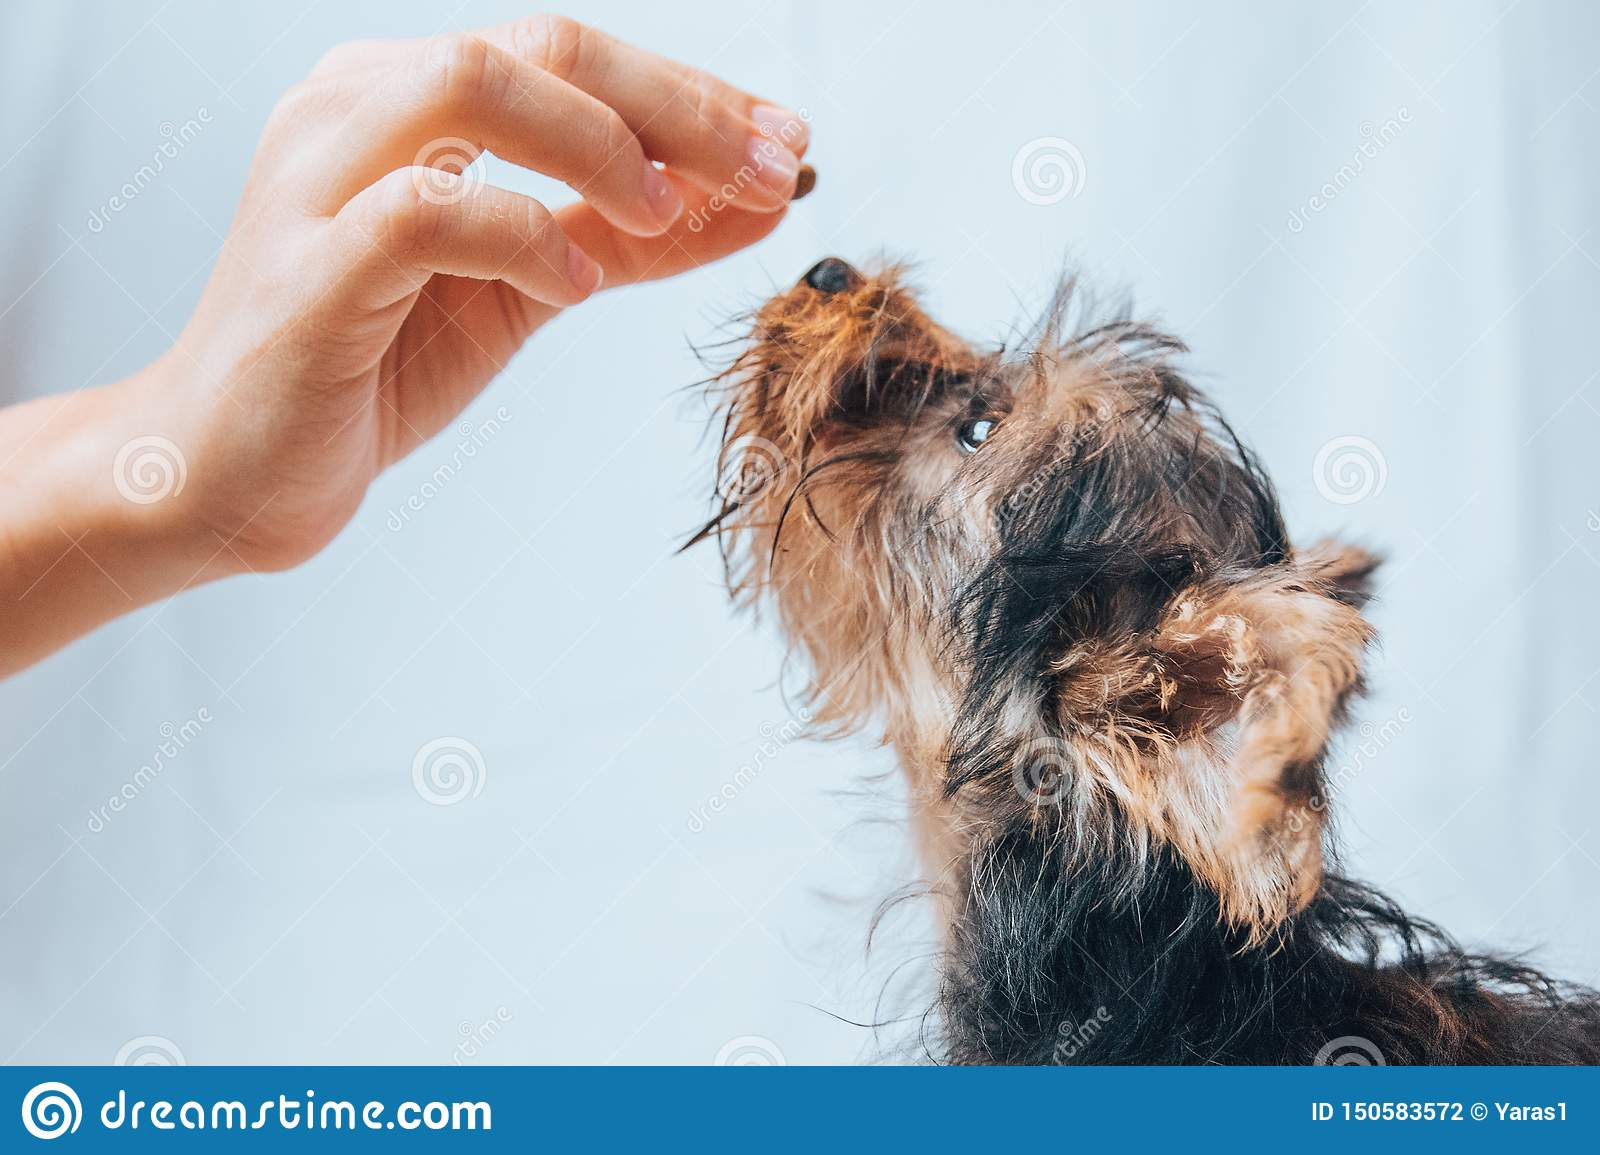 Yorkie Puppy Feeding And Training Stock Photo Image Of Handle Gained 150583572